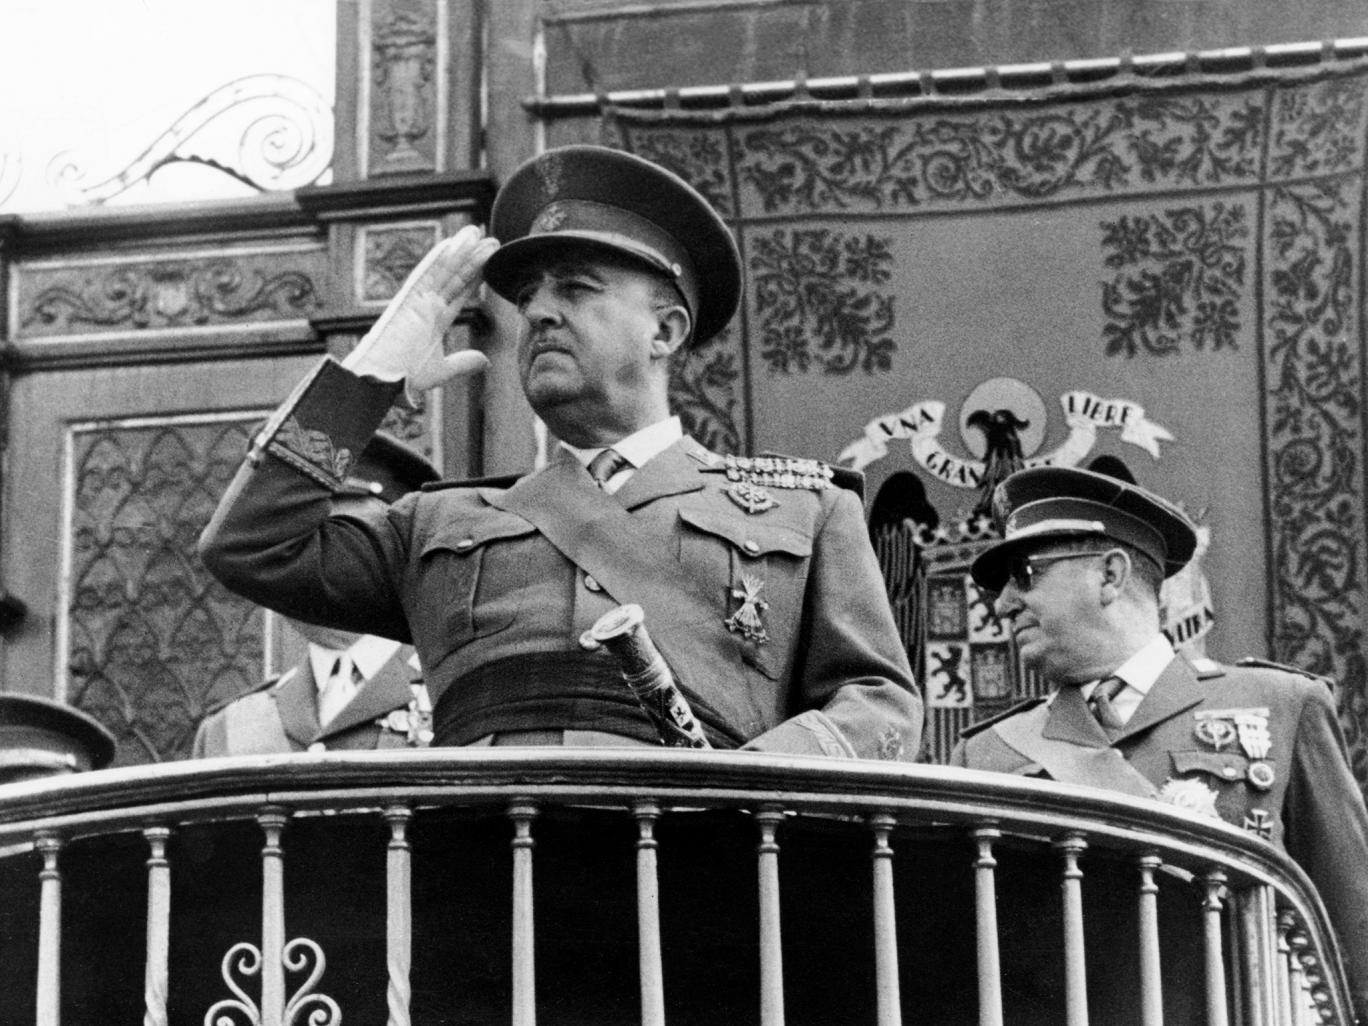 The former dictator of fascist Spain, Gen. Francisco Franco,forbade any attempts at Catalonian autonomy which has created lasting resentment, photo from AFP/Getty